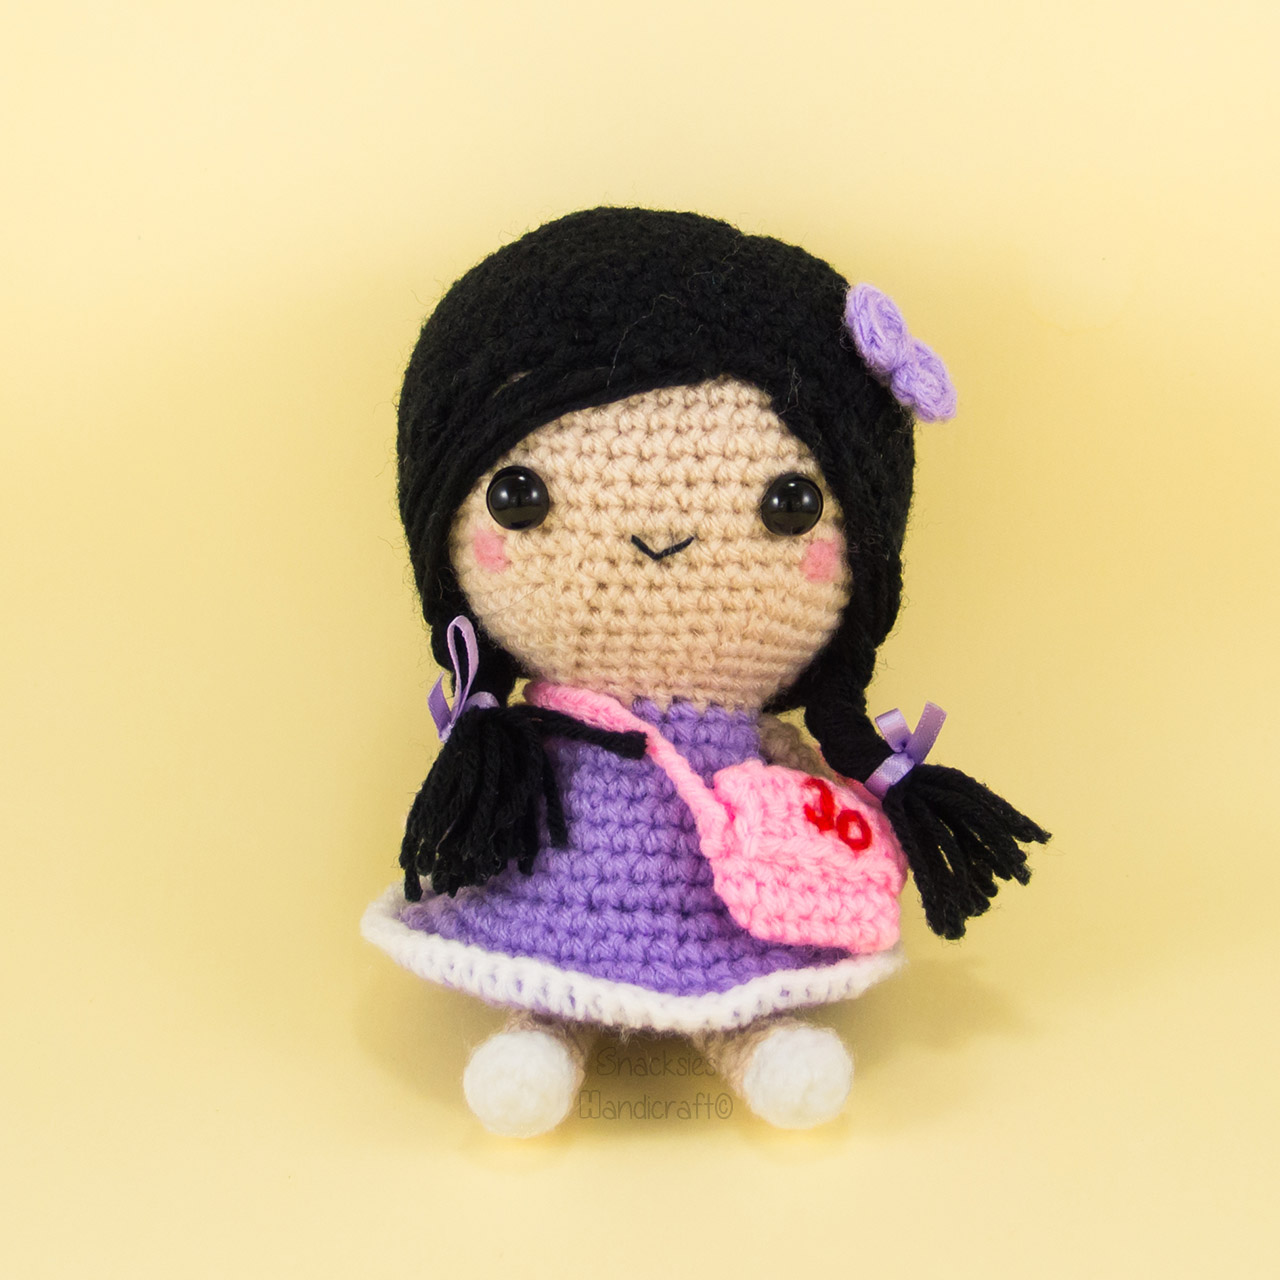 crocheted-girl-with-plaits-amigurumi